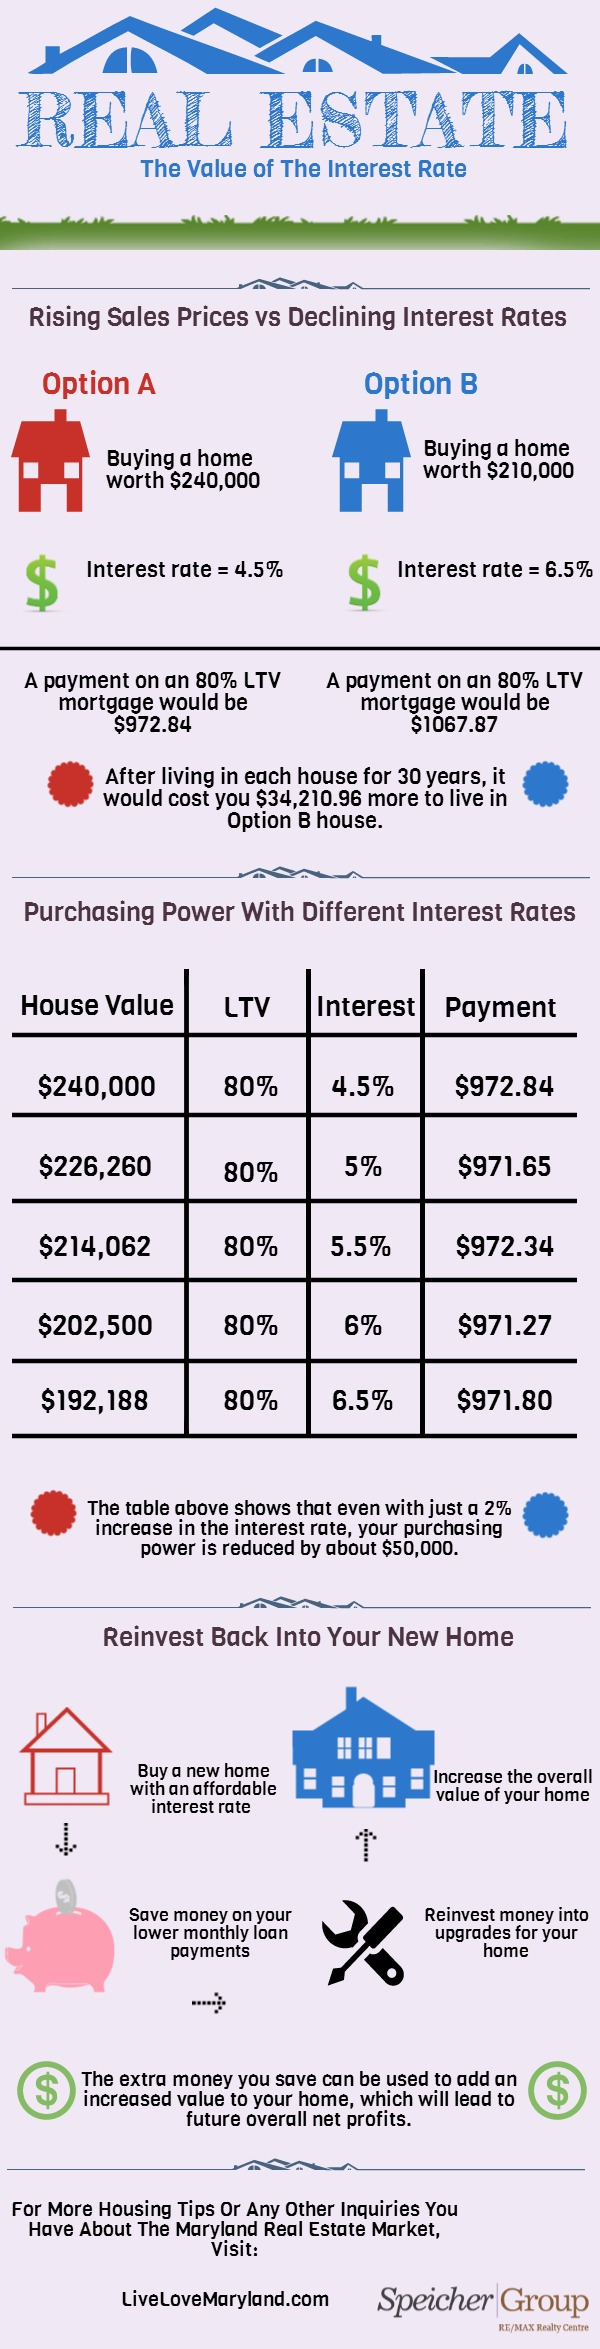 The Value of the Interest Rate